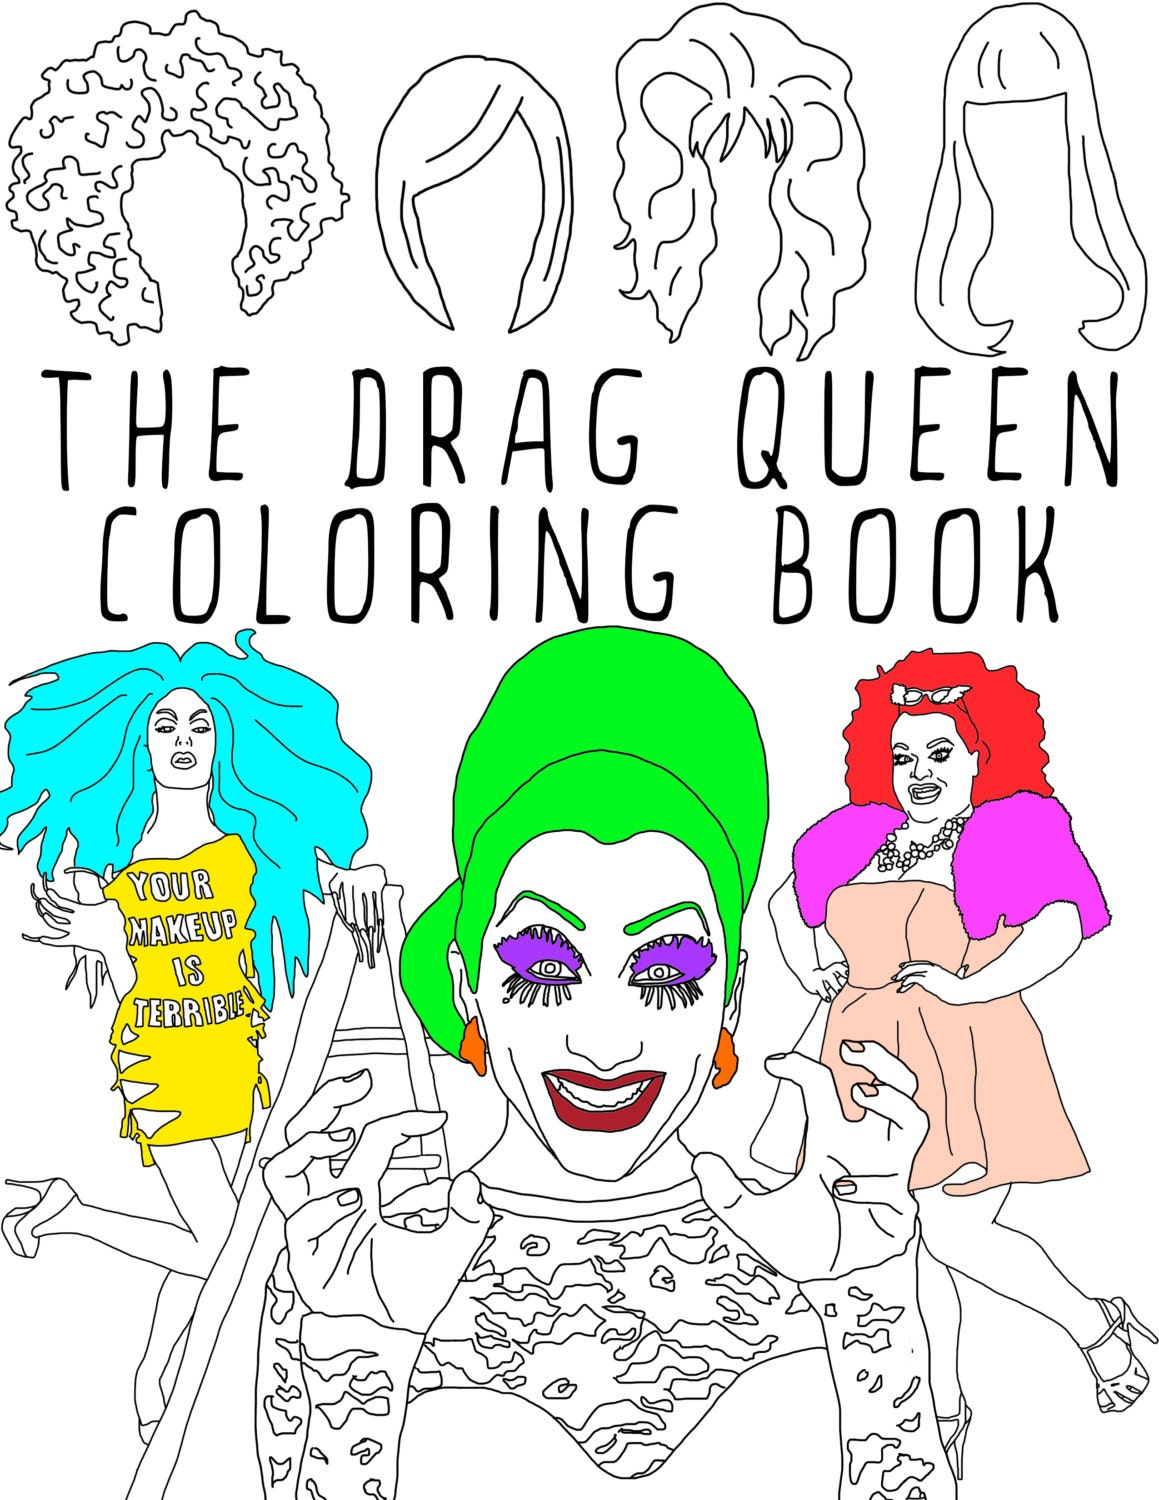 The Drag Queen Coloring Book Adult coloring book RuPaul